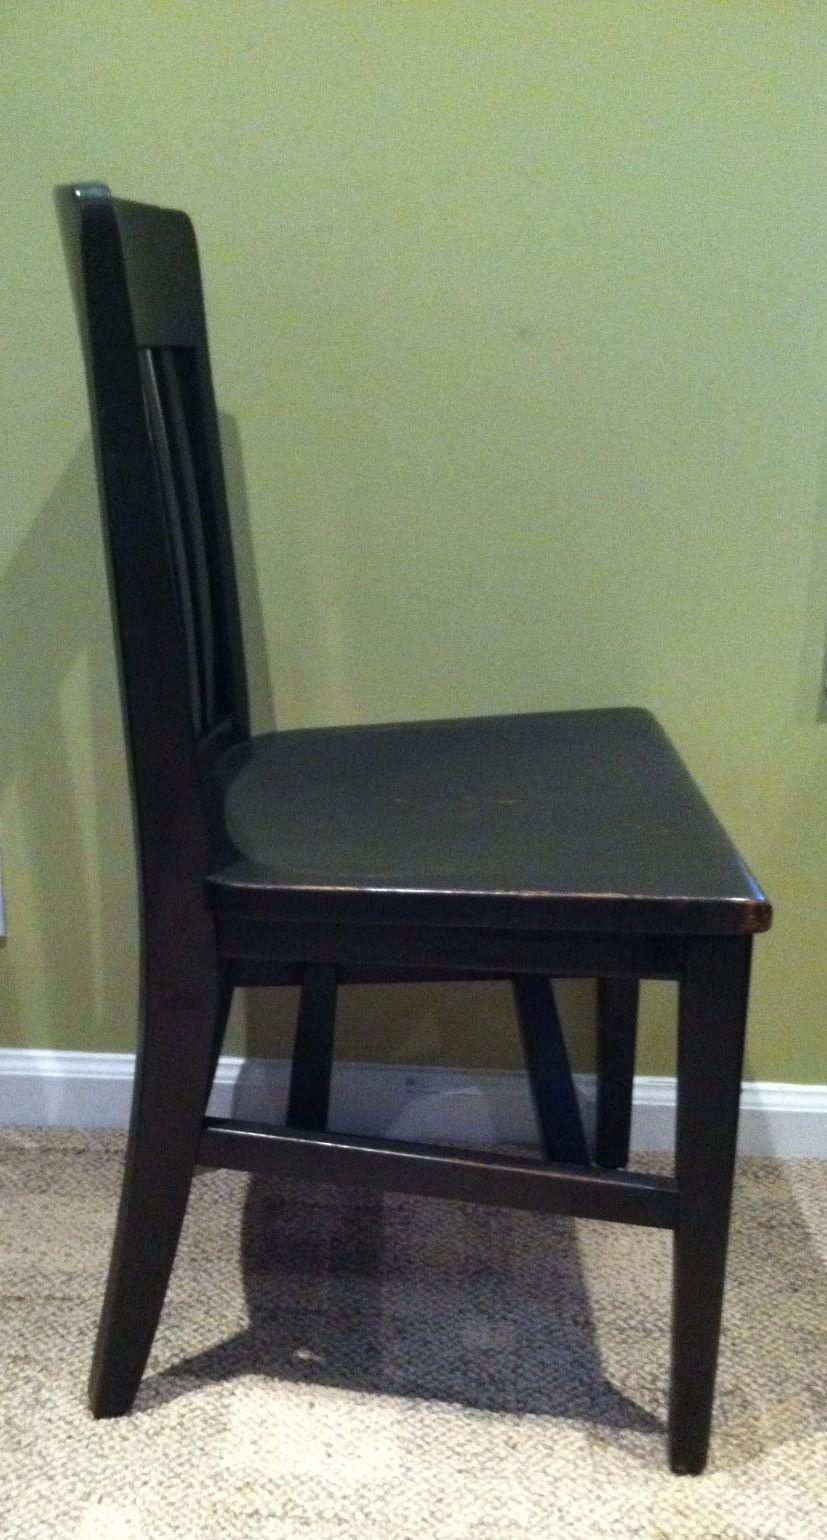 Marvelous B. L. Marble Chair Company Office / Desk Chair   Image 3 Of 7